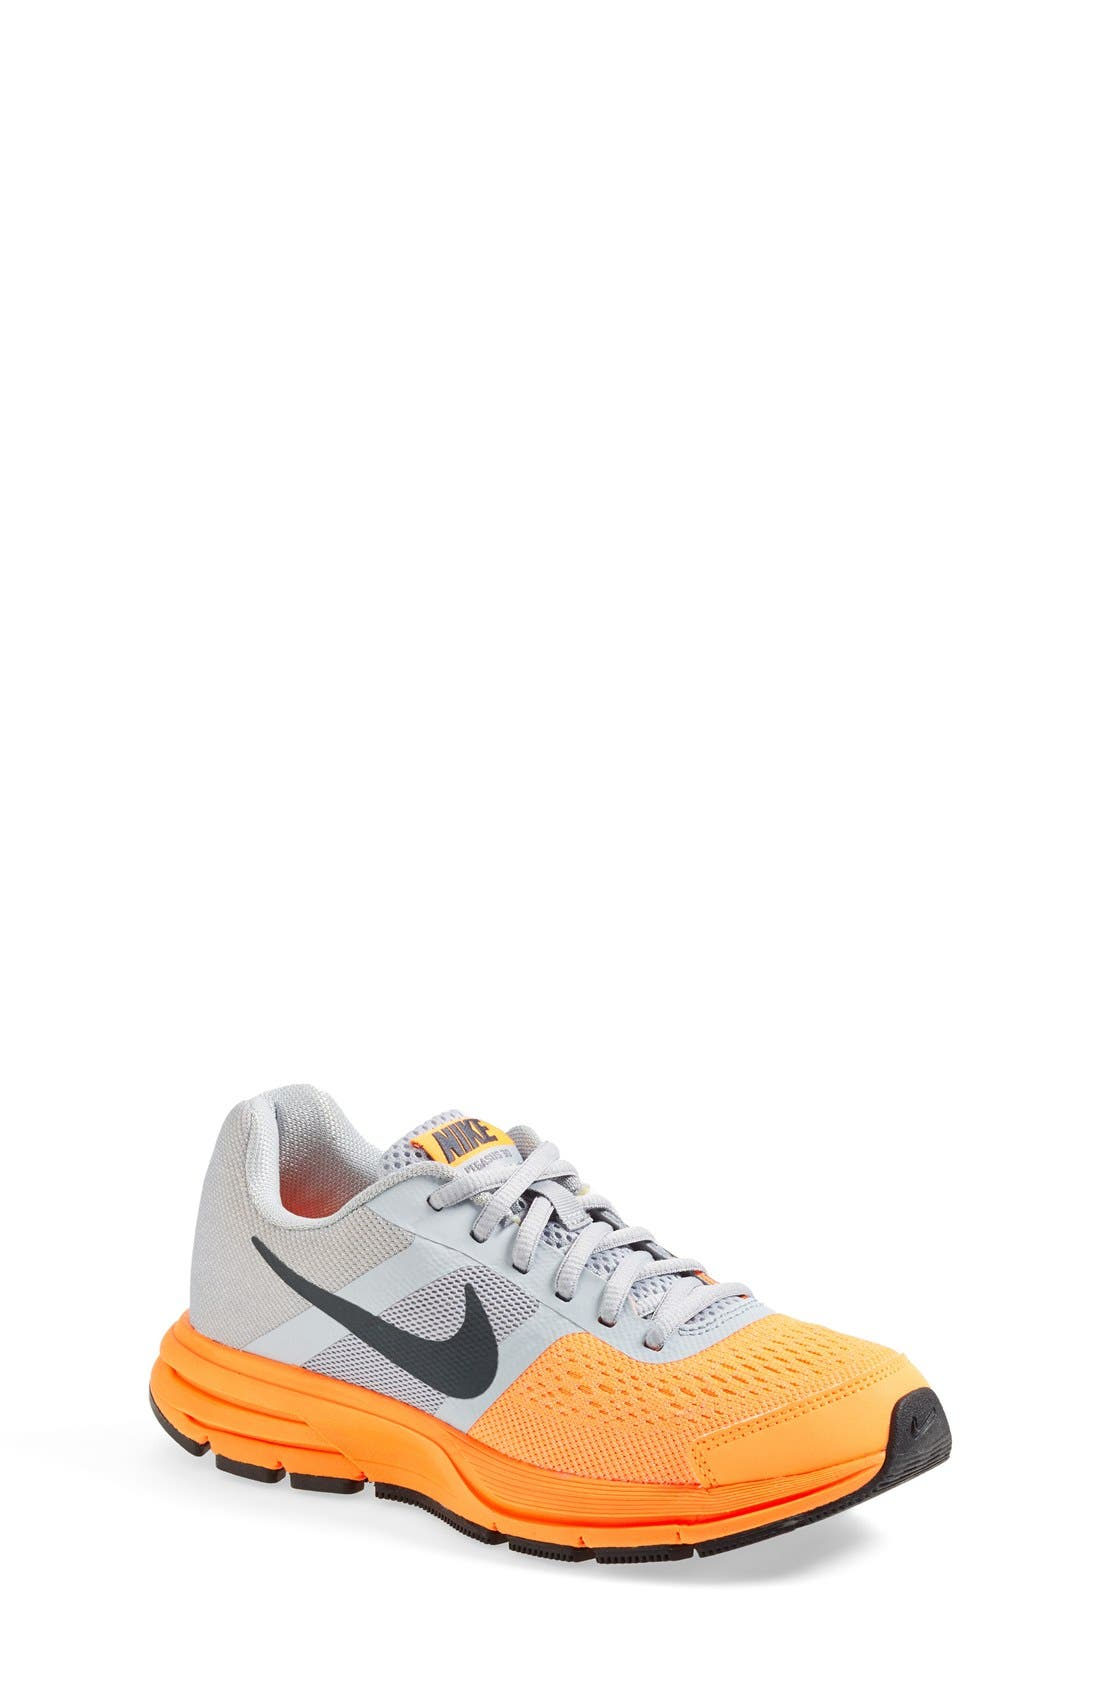 Alternate Image 1 Selected - Nike 'Air Pegasus+ 30 GS' Running Shoe (Little Kid & Big Kid)